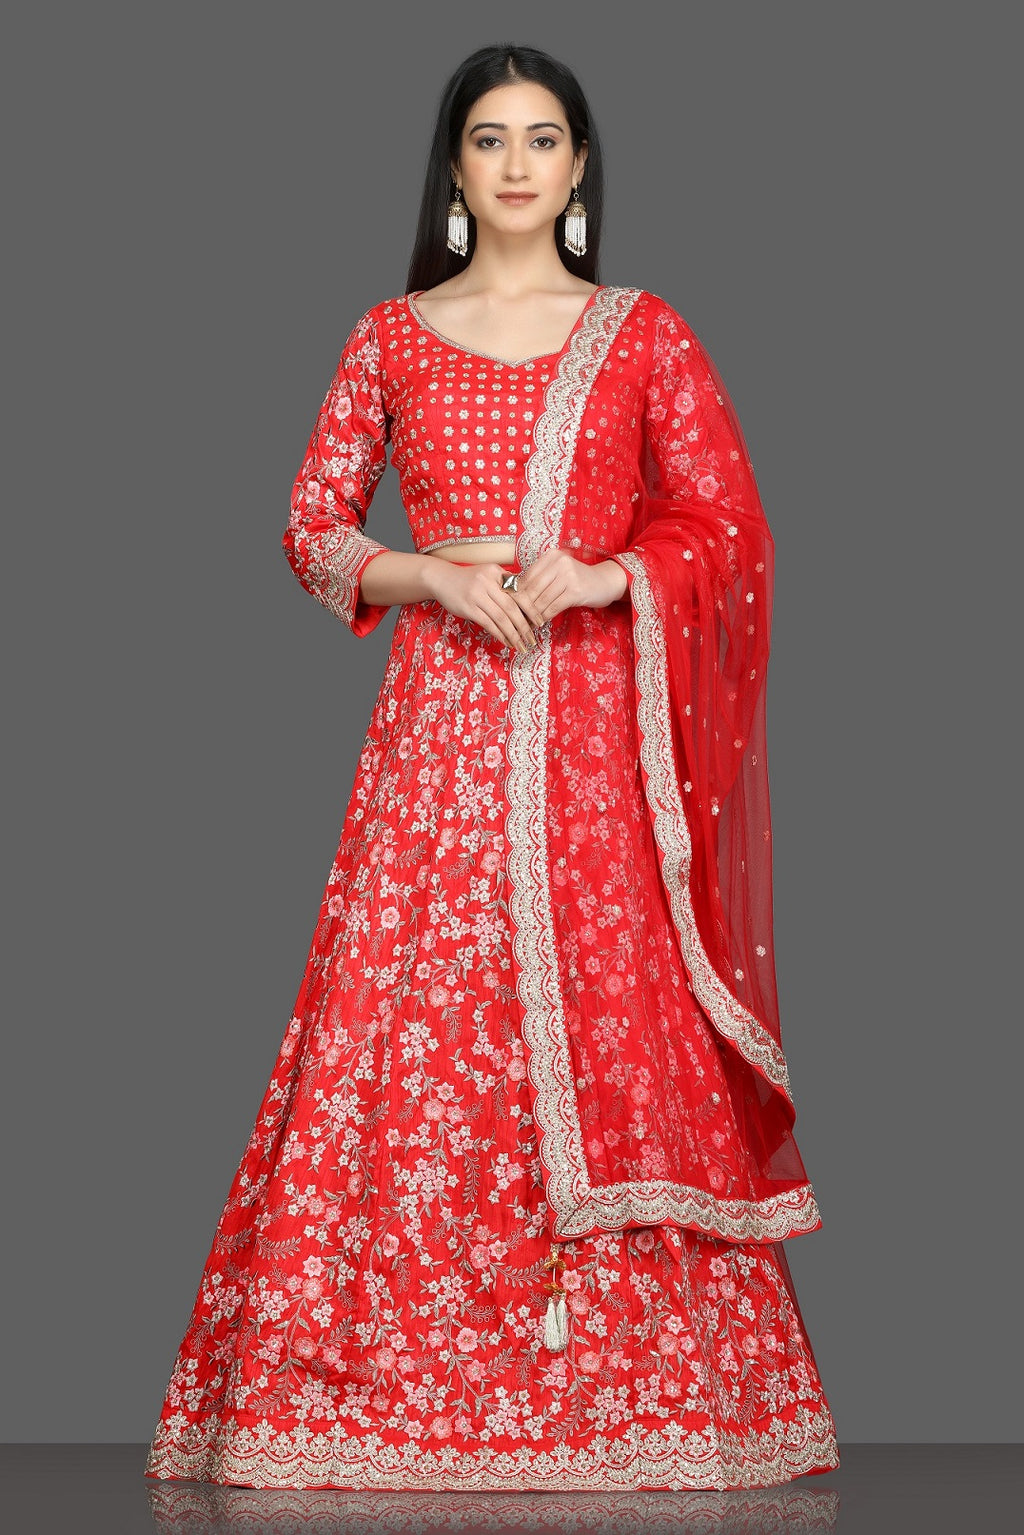 Shop beautiful tomato red embroidered lehenga online in USA with net dupatta. Flaunt your sartorial choices on special occasions with beautiful designer gowns, Anarkali suits, traditional salwar suits, Indian lehengas from Pure Elegance Indian fashion boutique in USA. -full view